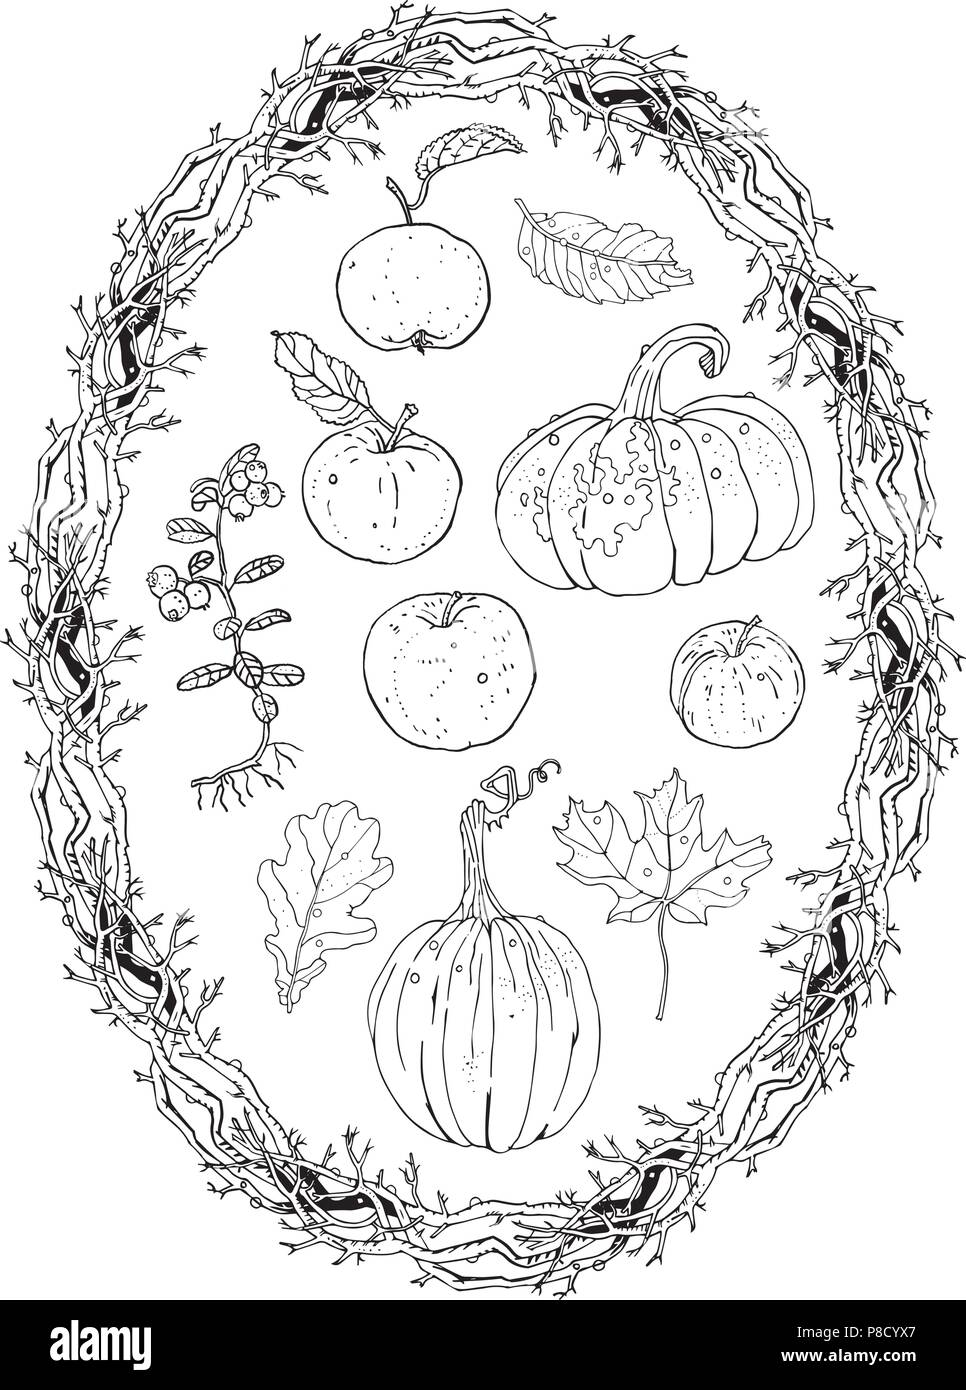 medium resolution of autumn harvest clipart set oval wreath branches frame pumpkins apples lingonberry oak maple falling leaves fall seasonal decoration coloring p